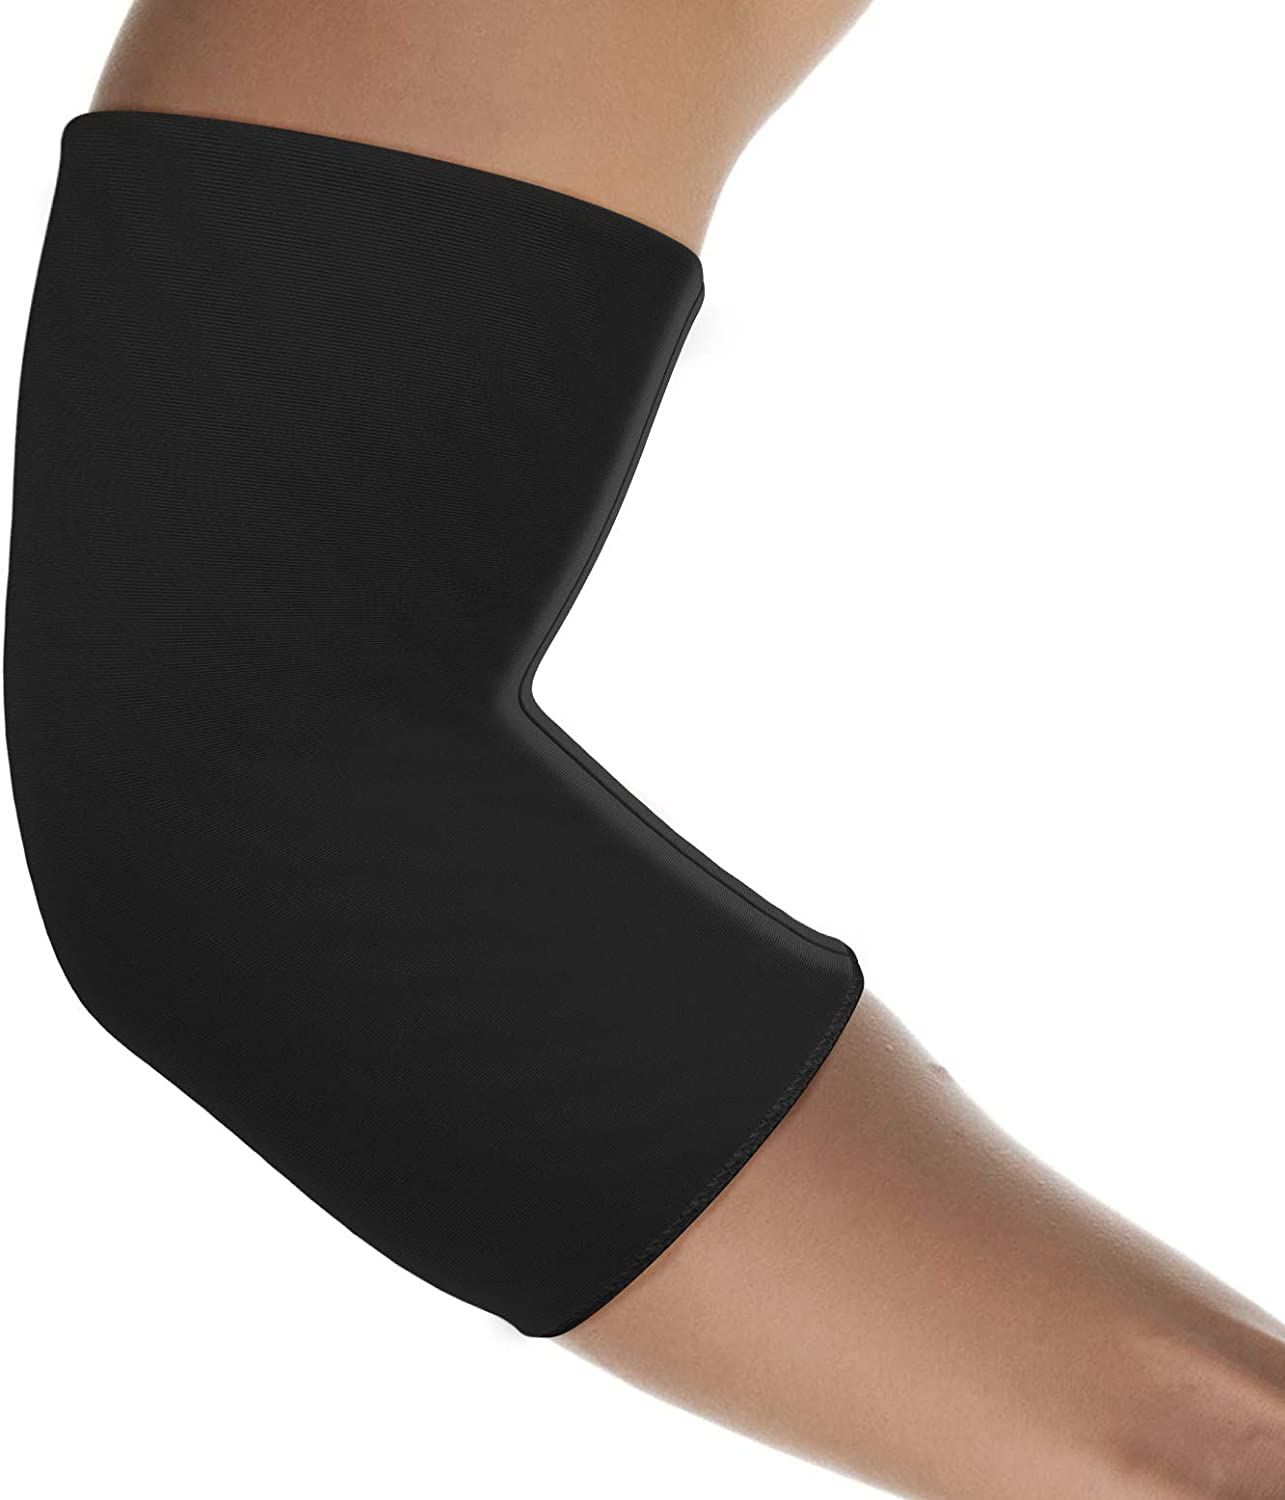 bonmedico Maniko Elbow Ice Pack Brace - Cool and Heat Elbow Brace for Men & Women, Elbow Sleeve Ice Packs for Muscle Pain Relief, Black